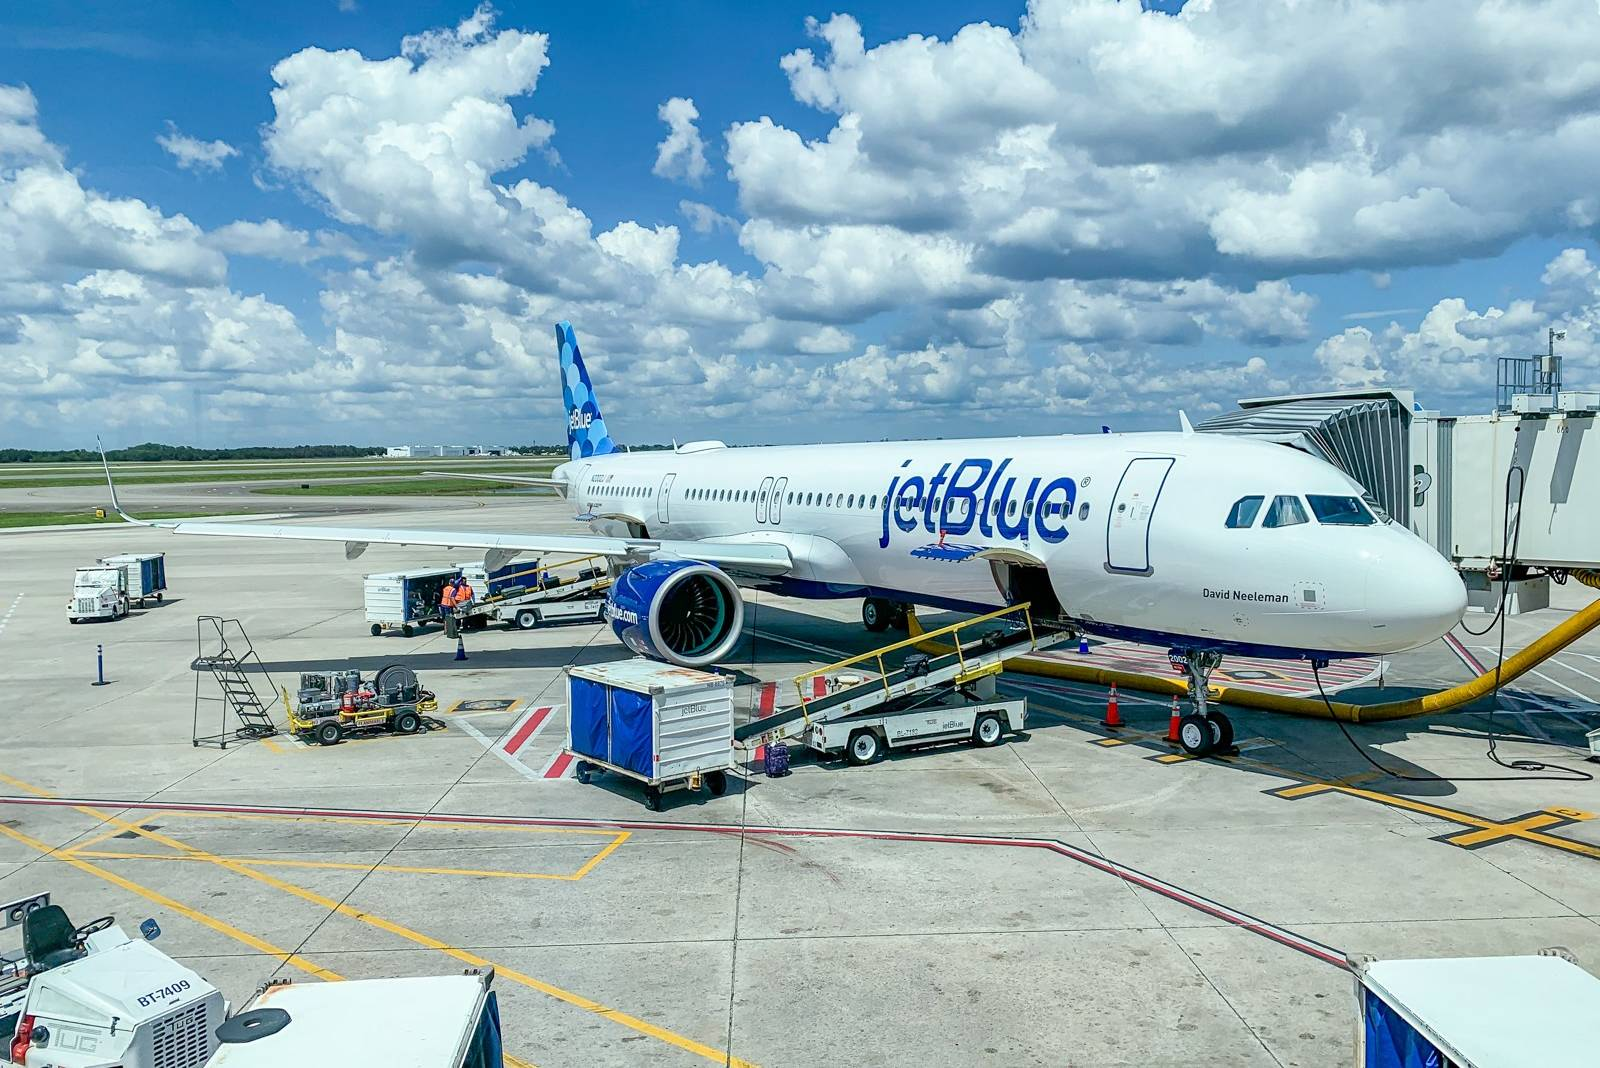 Breaking: JetBlue becomes first US airline to require passenger face coverings